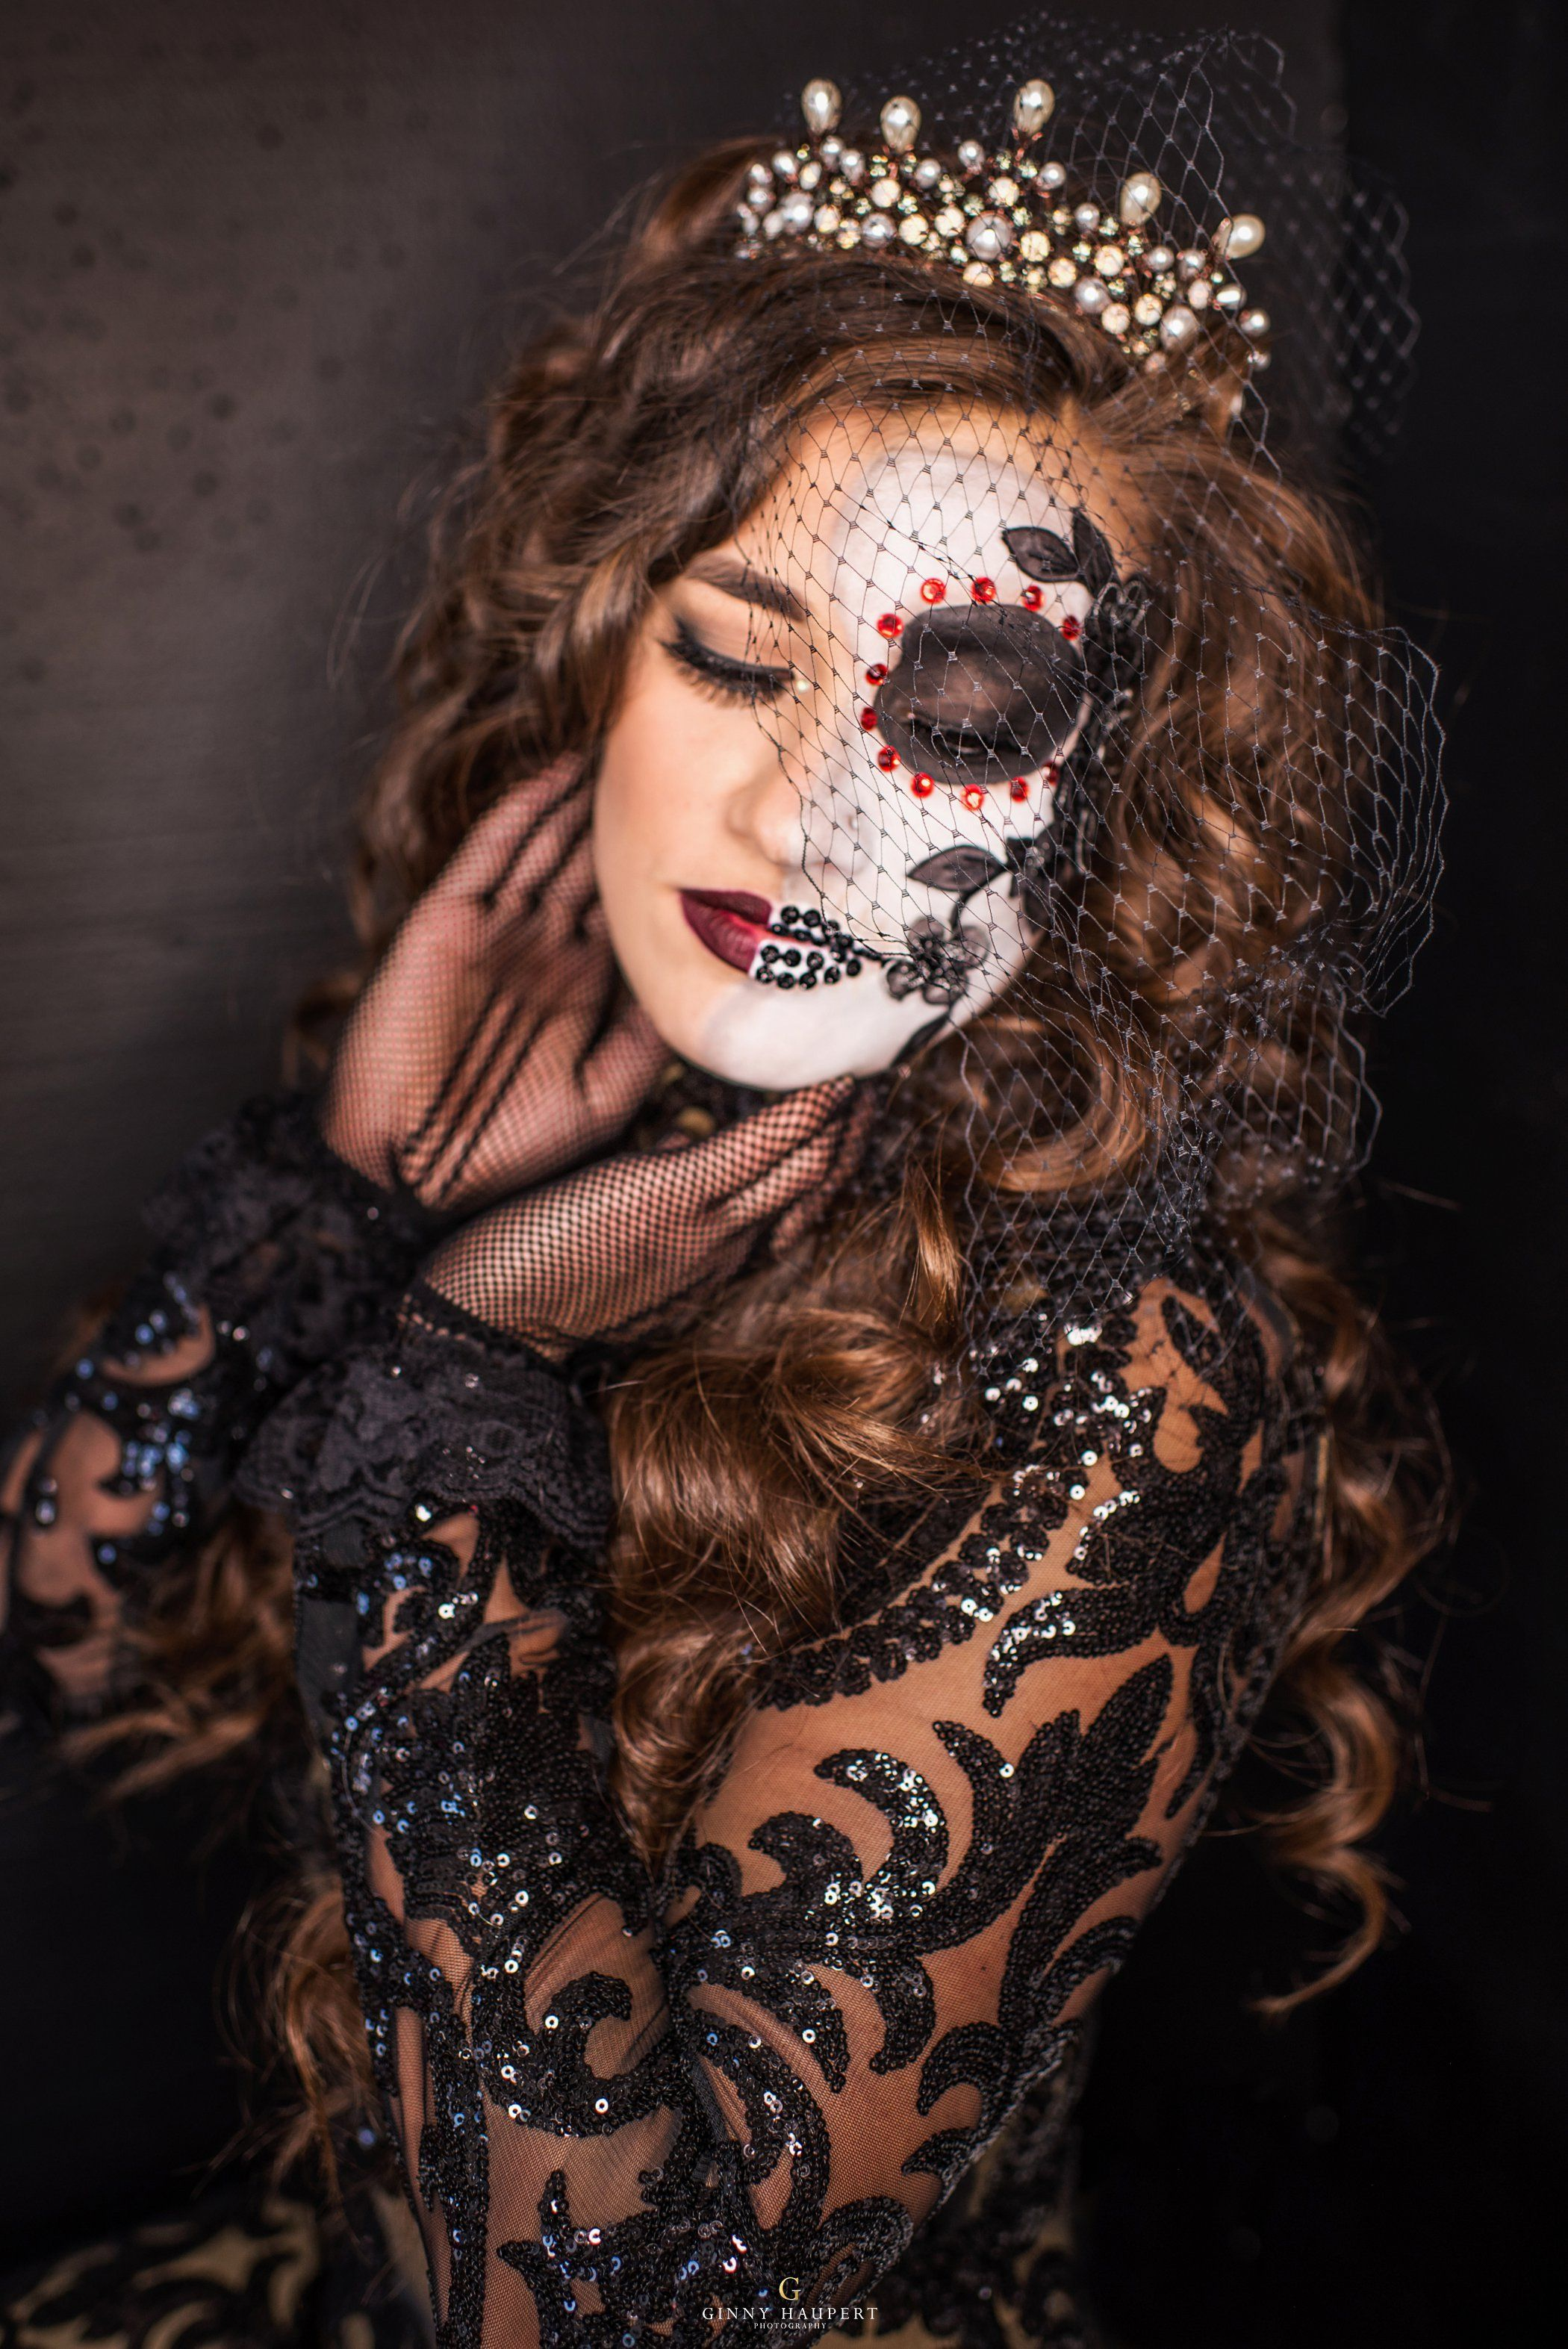 Denver Photographer Ginny Haupert and Makeup artist Raquel